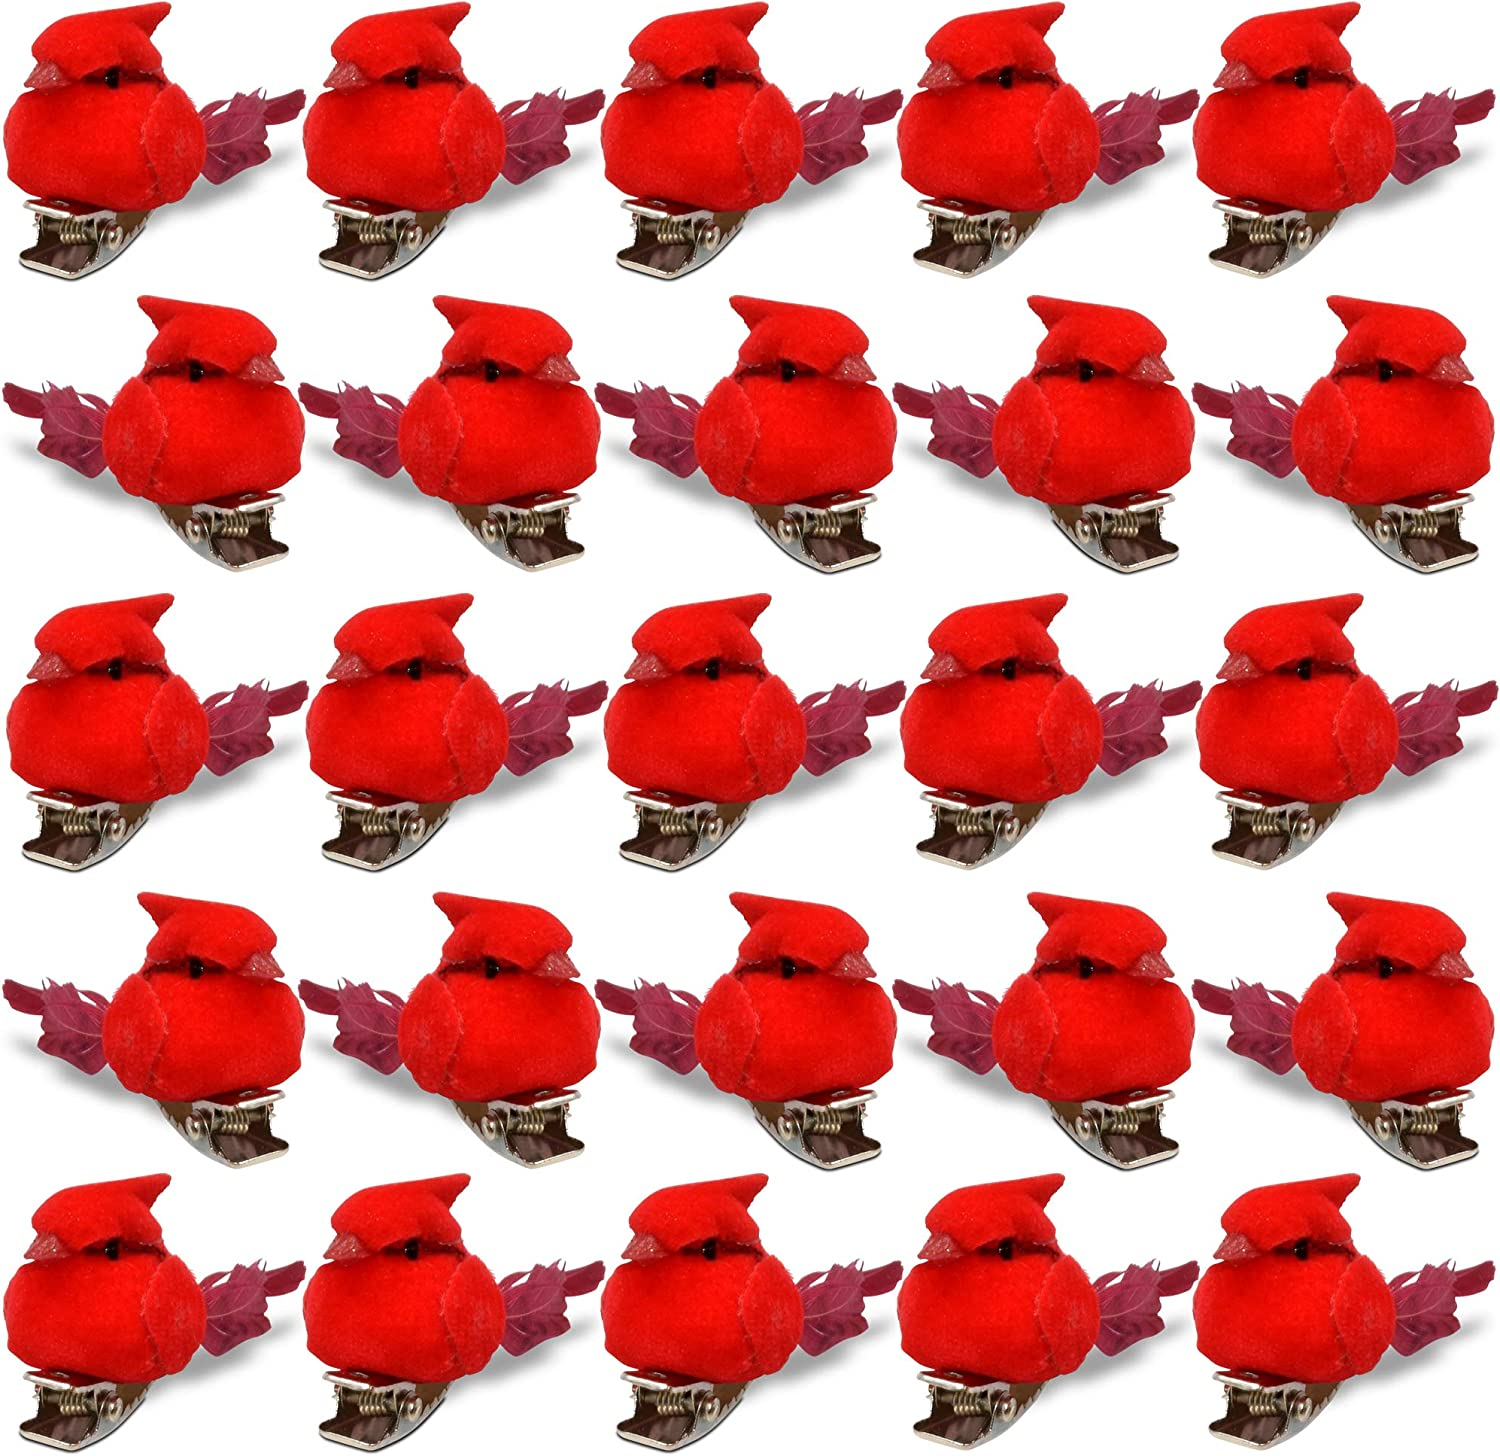 Christmas Mini Cardinal Clip on Tree Ornaments Bird Decorations Set of 30 Approx. 1.5 Inch Long Bright Red Velvet & Feathers Wreaths Garland Centerpieces Decoration Crafts by Gift Boutique